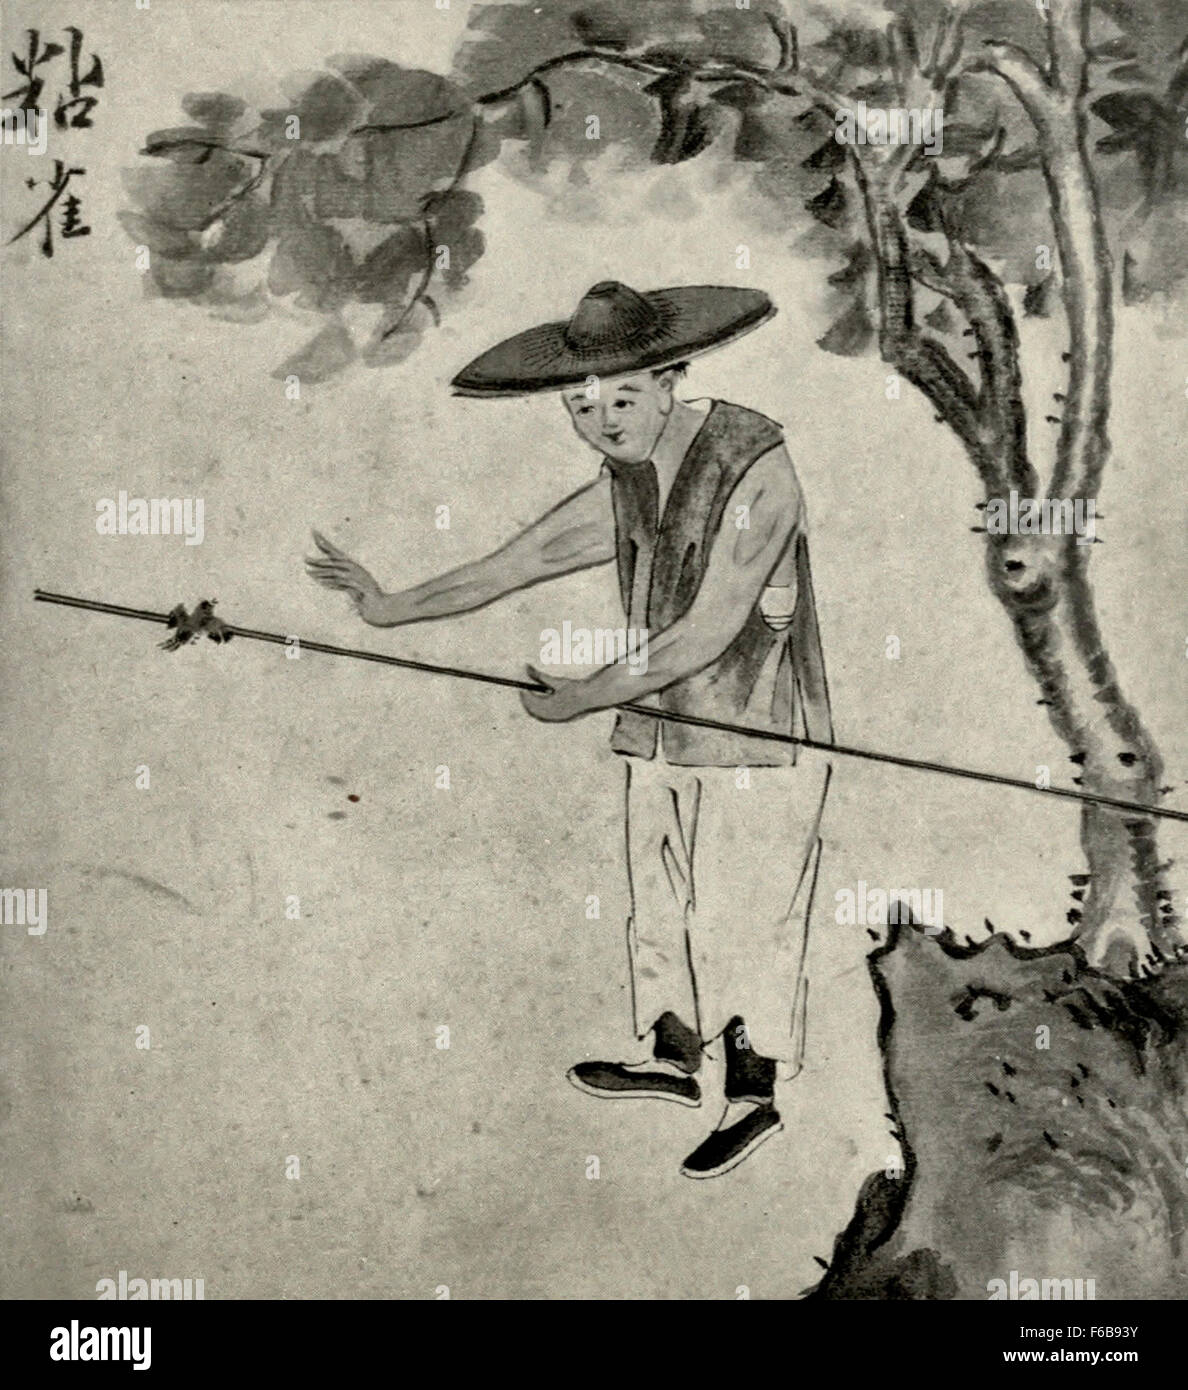 A Favorite Pasttime - Taming a bird - China 1890s - Stock Image